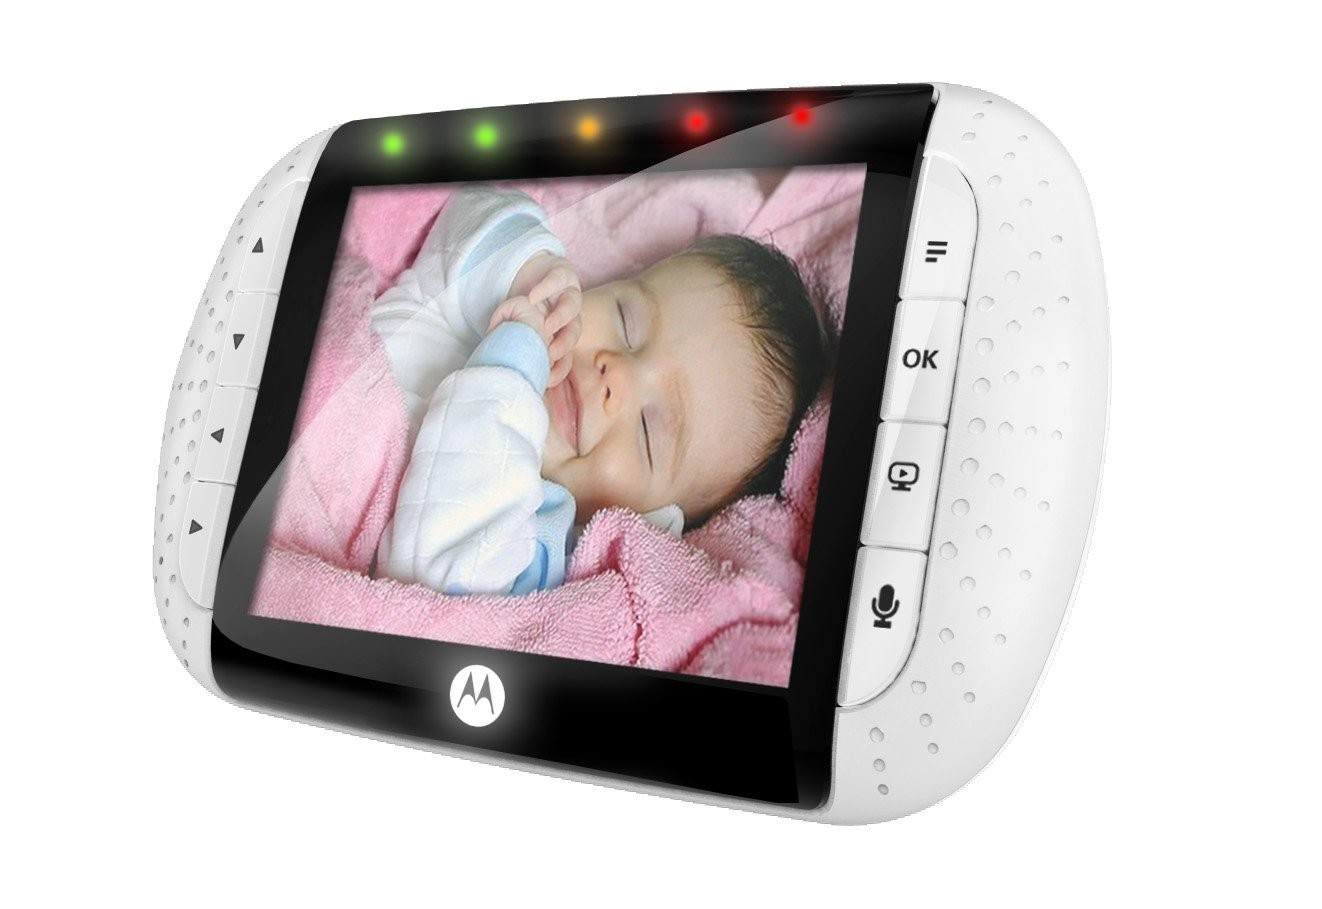 motorola mbp36 remote wireless video baby monitor with 3 5 inch color lcd screen. Black Bedroom Furniture Sets. Home Design Ideas